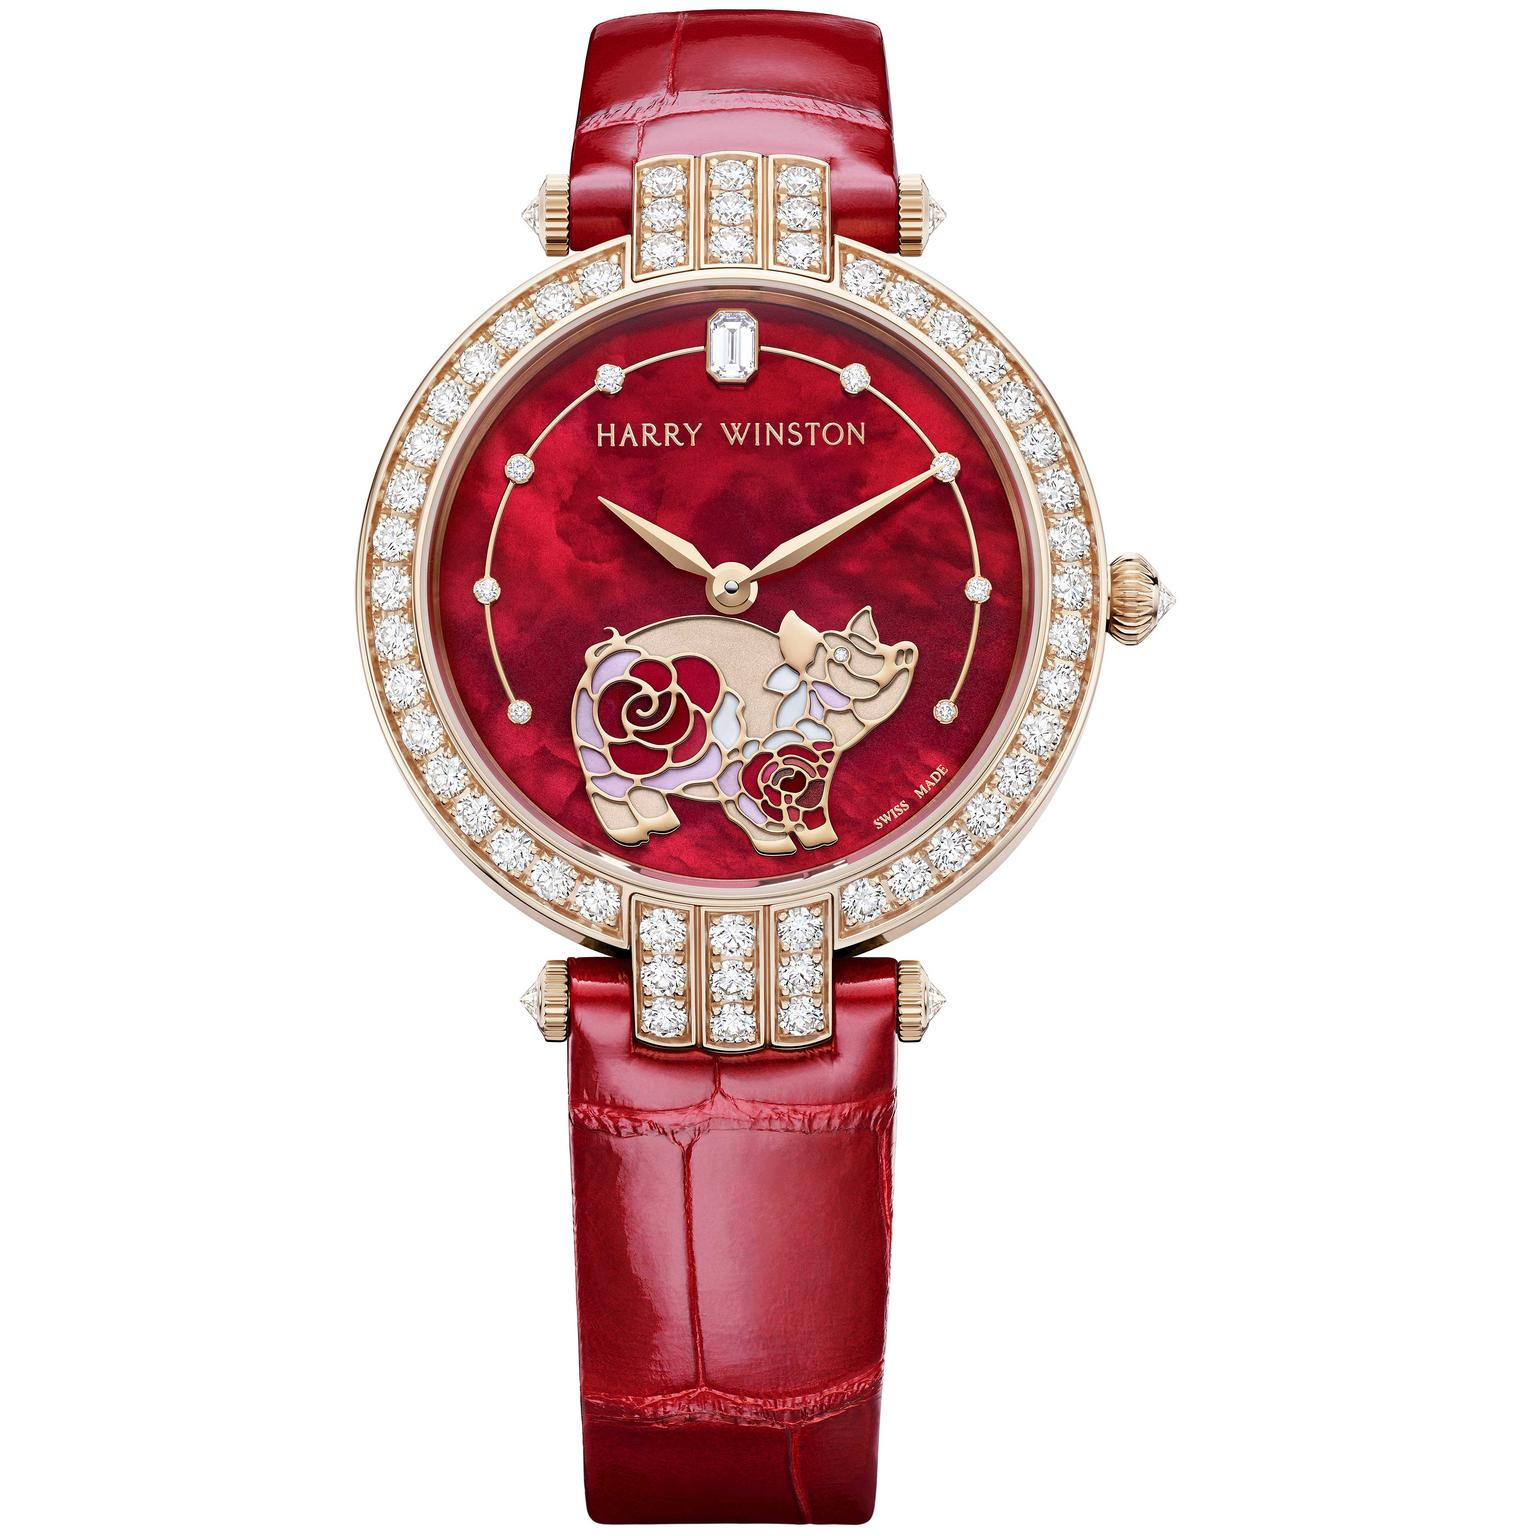 Harry Winston Premier Chinese New Year Pig watch